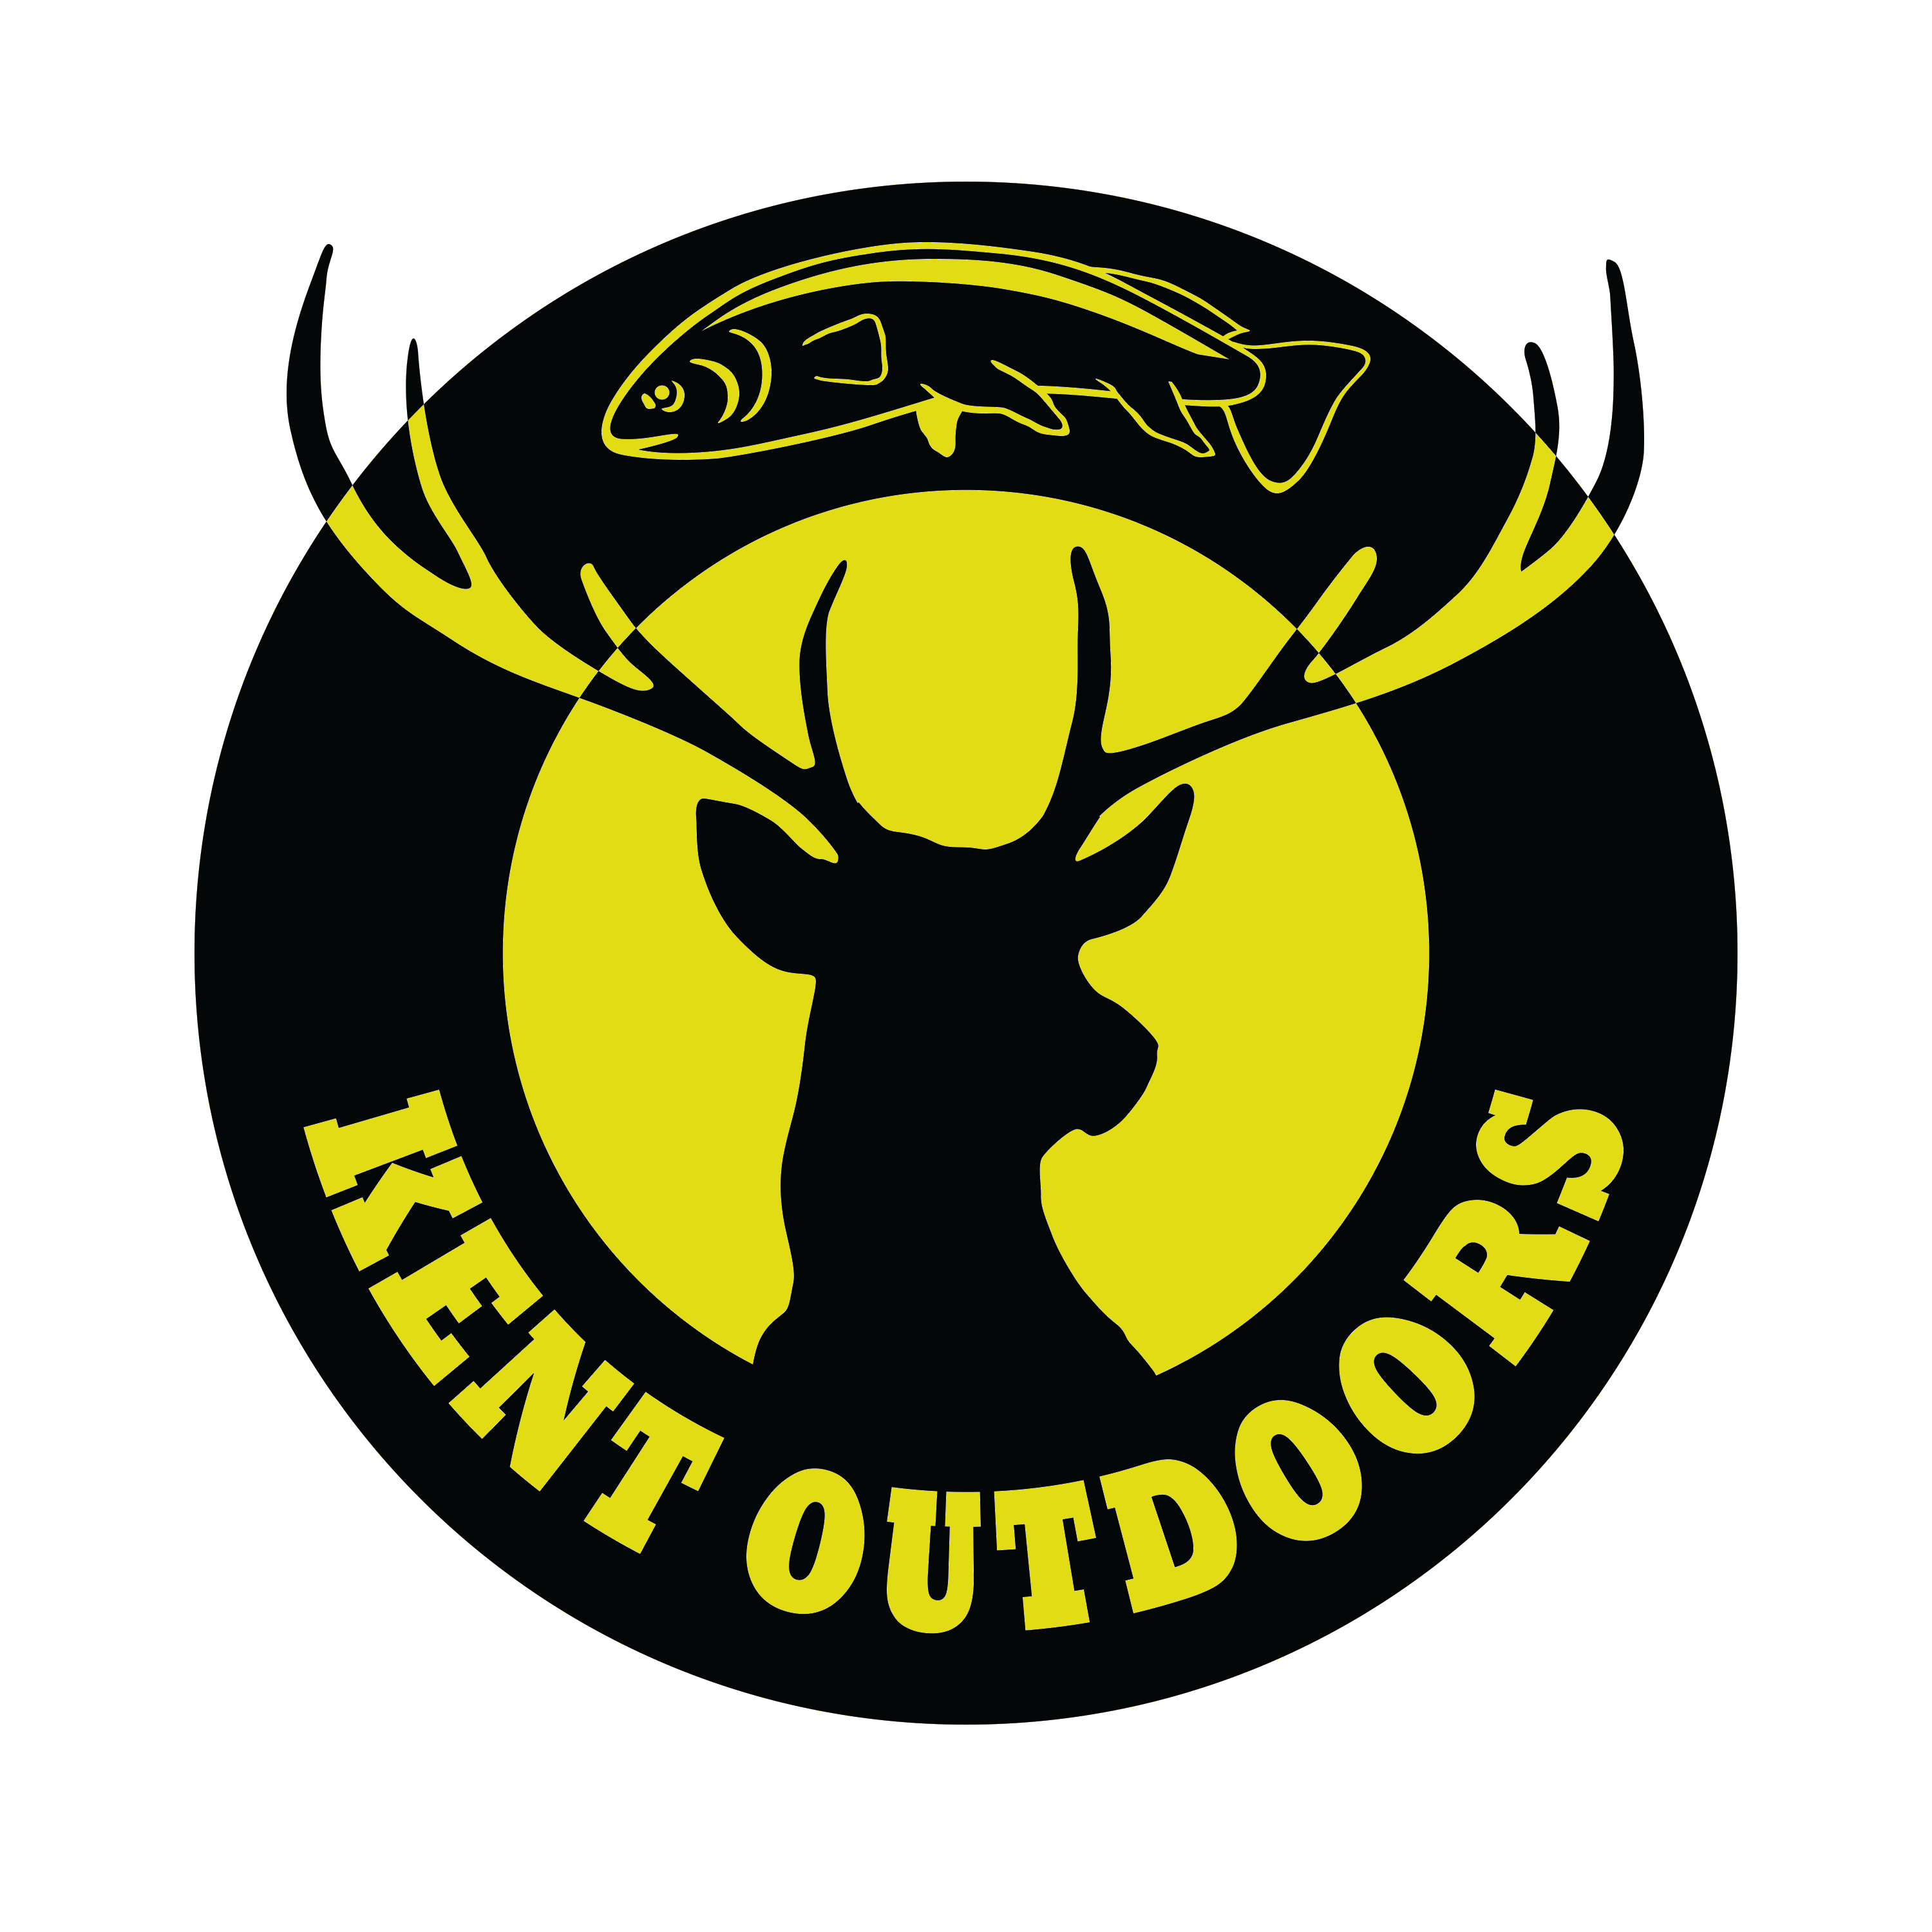 Kent Outdoors